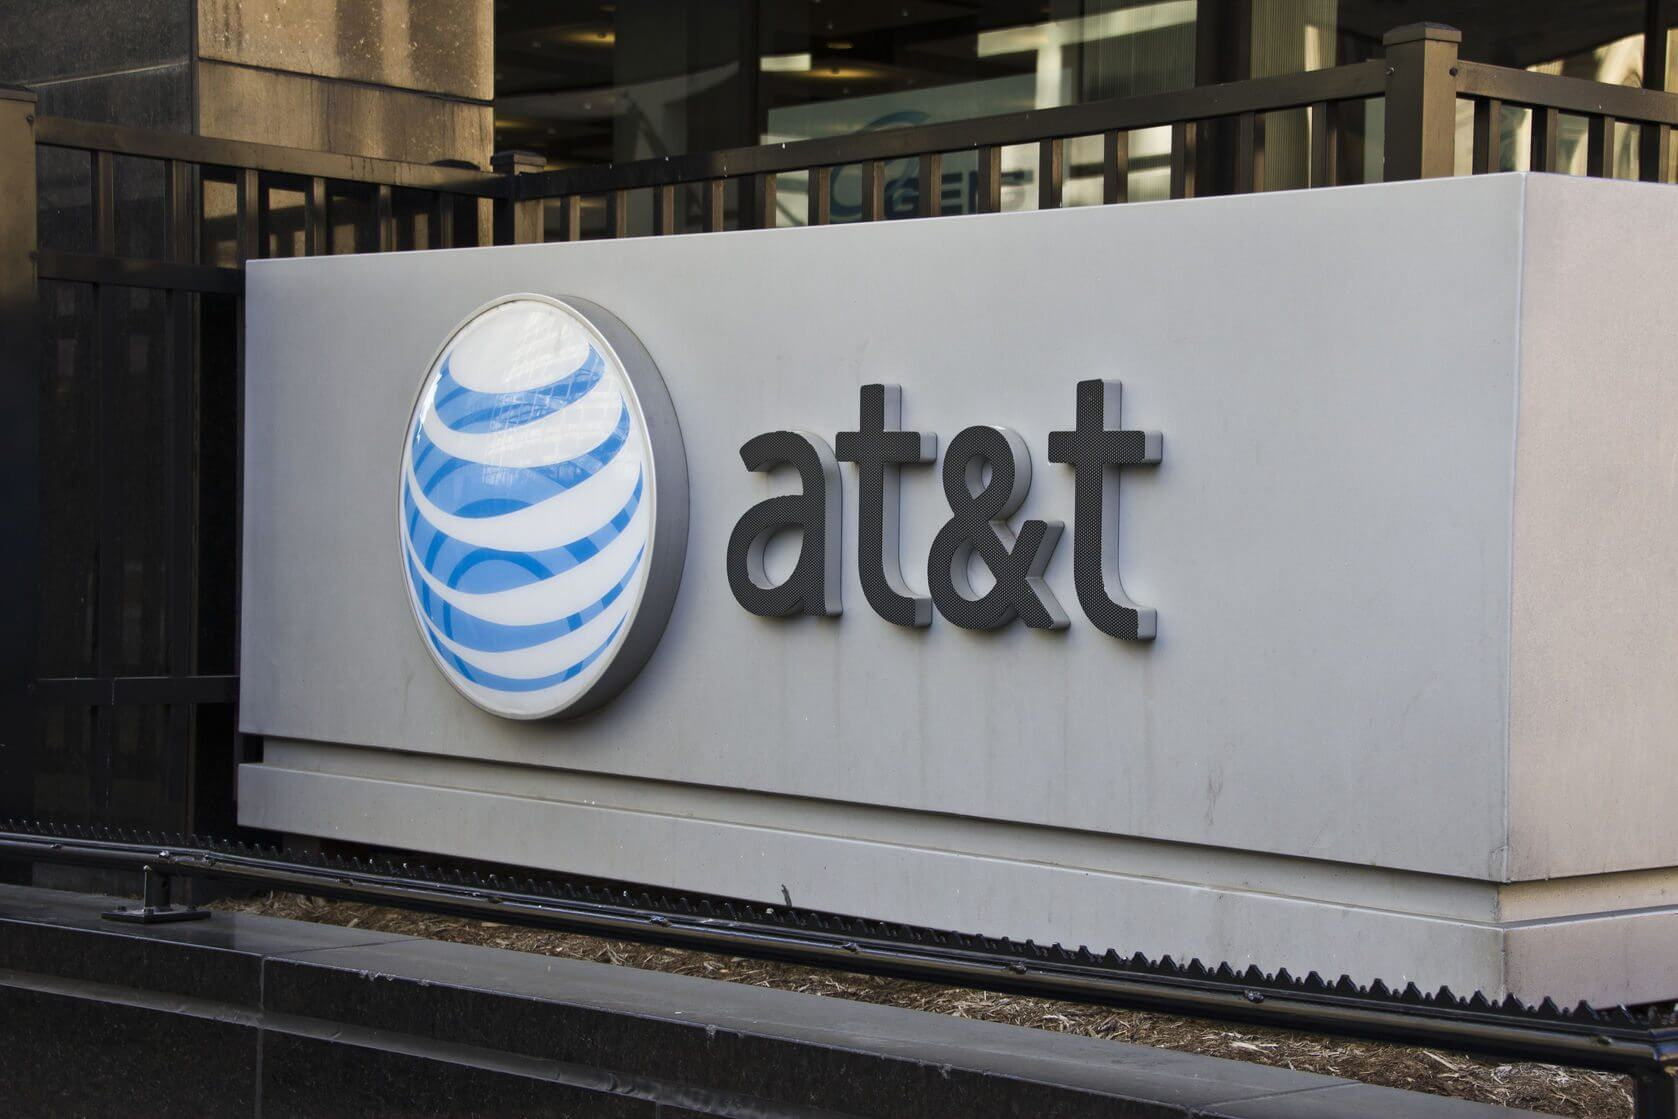 AT&T gets burned by rivals over its fake 5G network